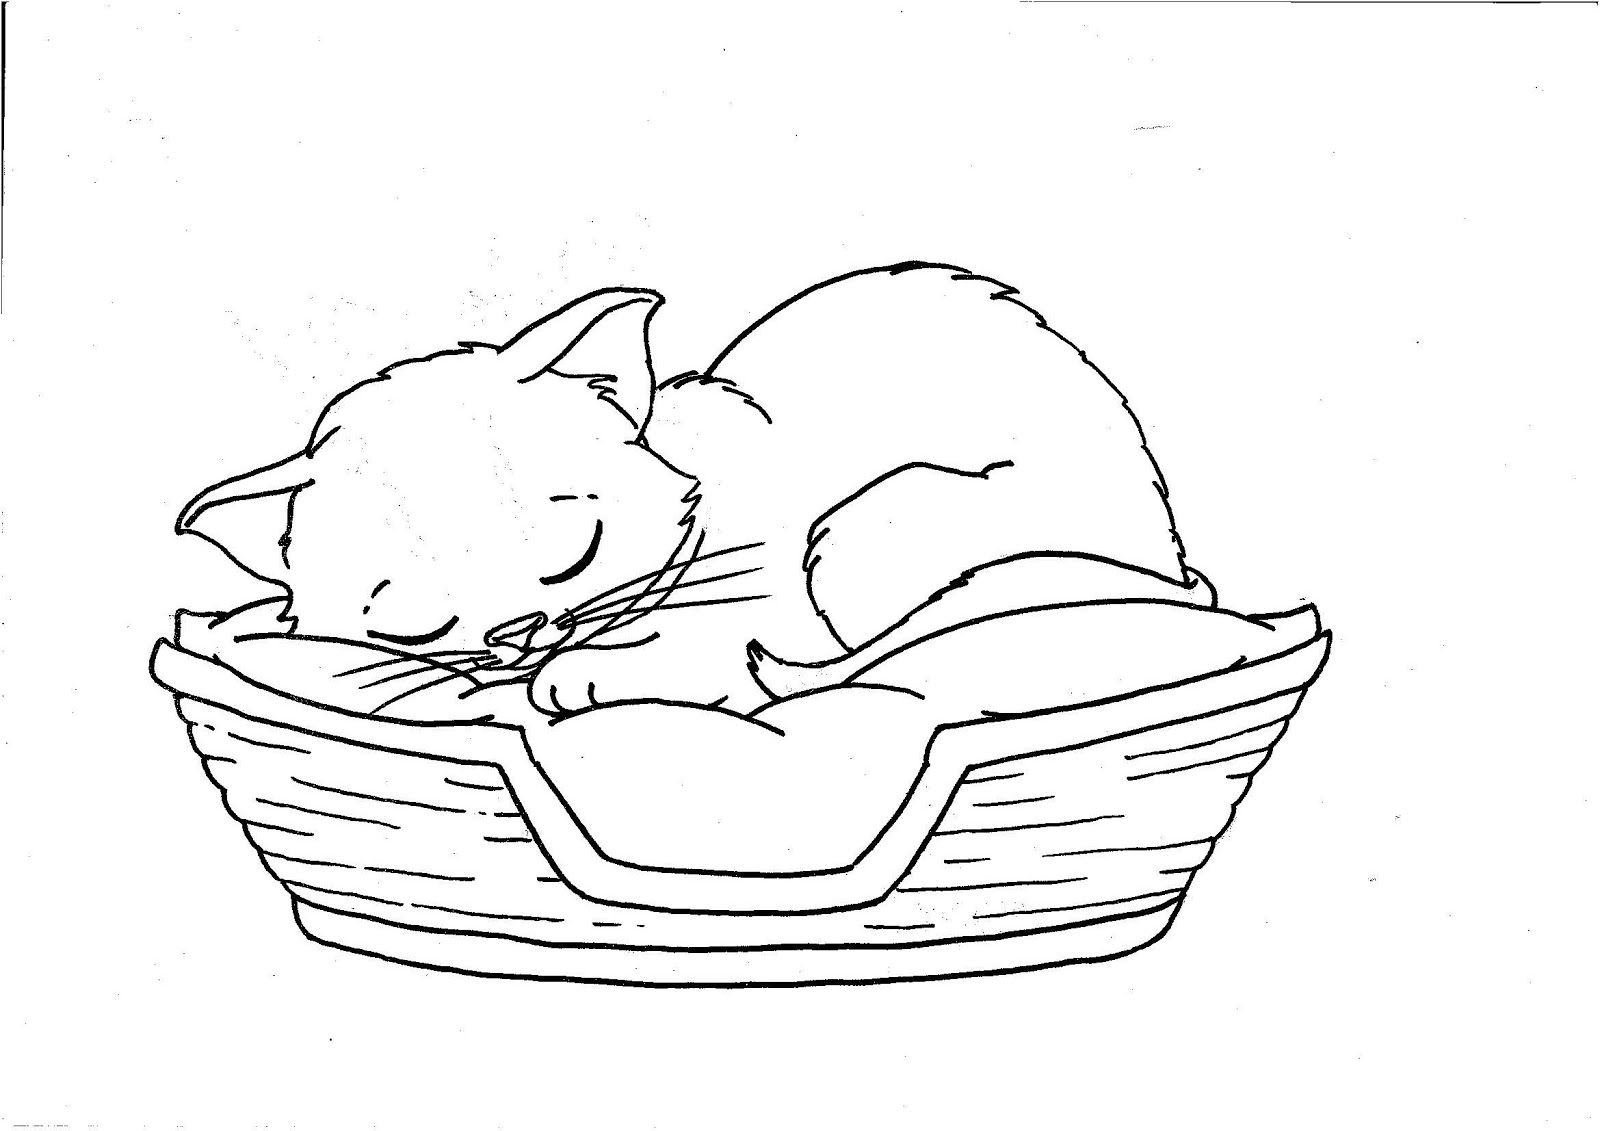 free coloring pages of kittens radart cats rule coloring sheets pages free of kittens coloring